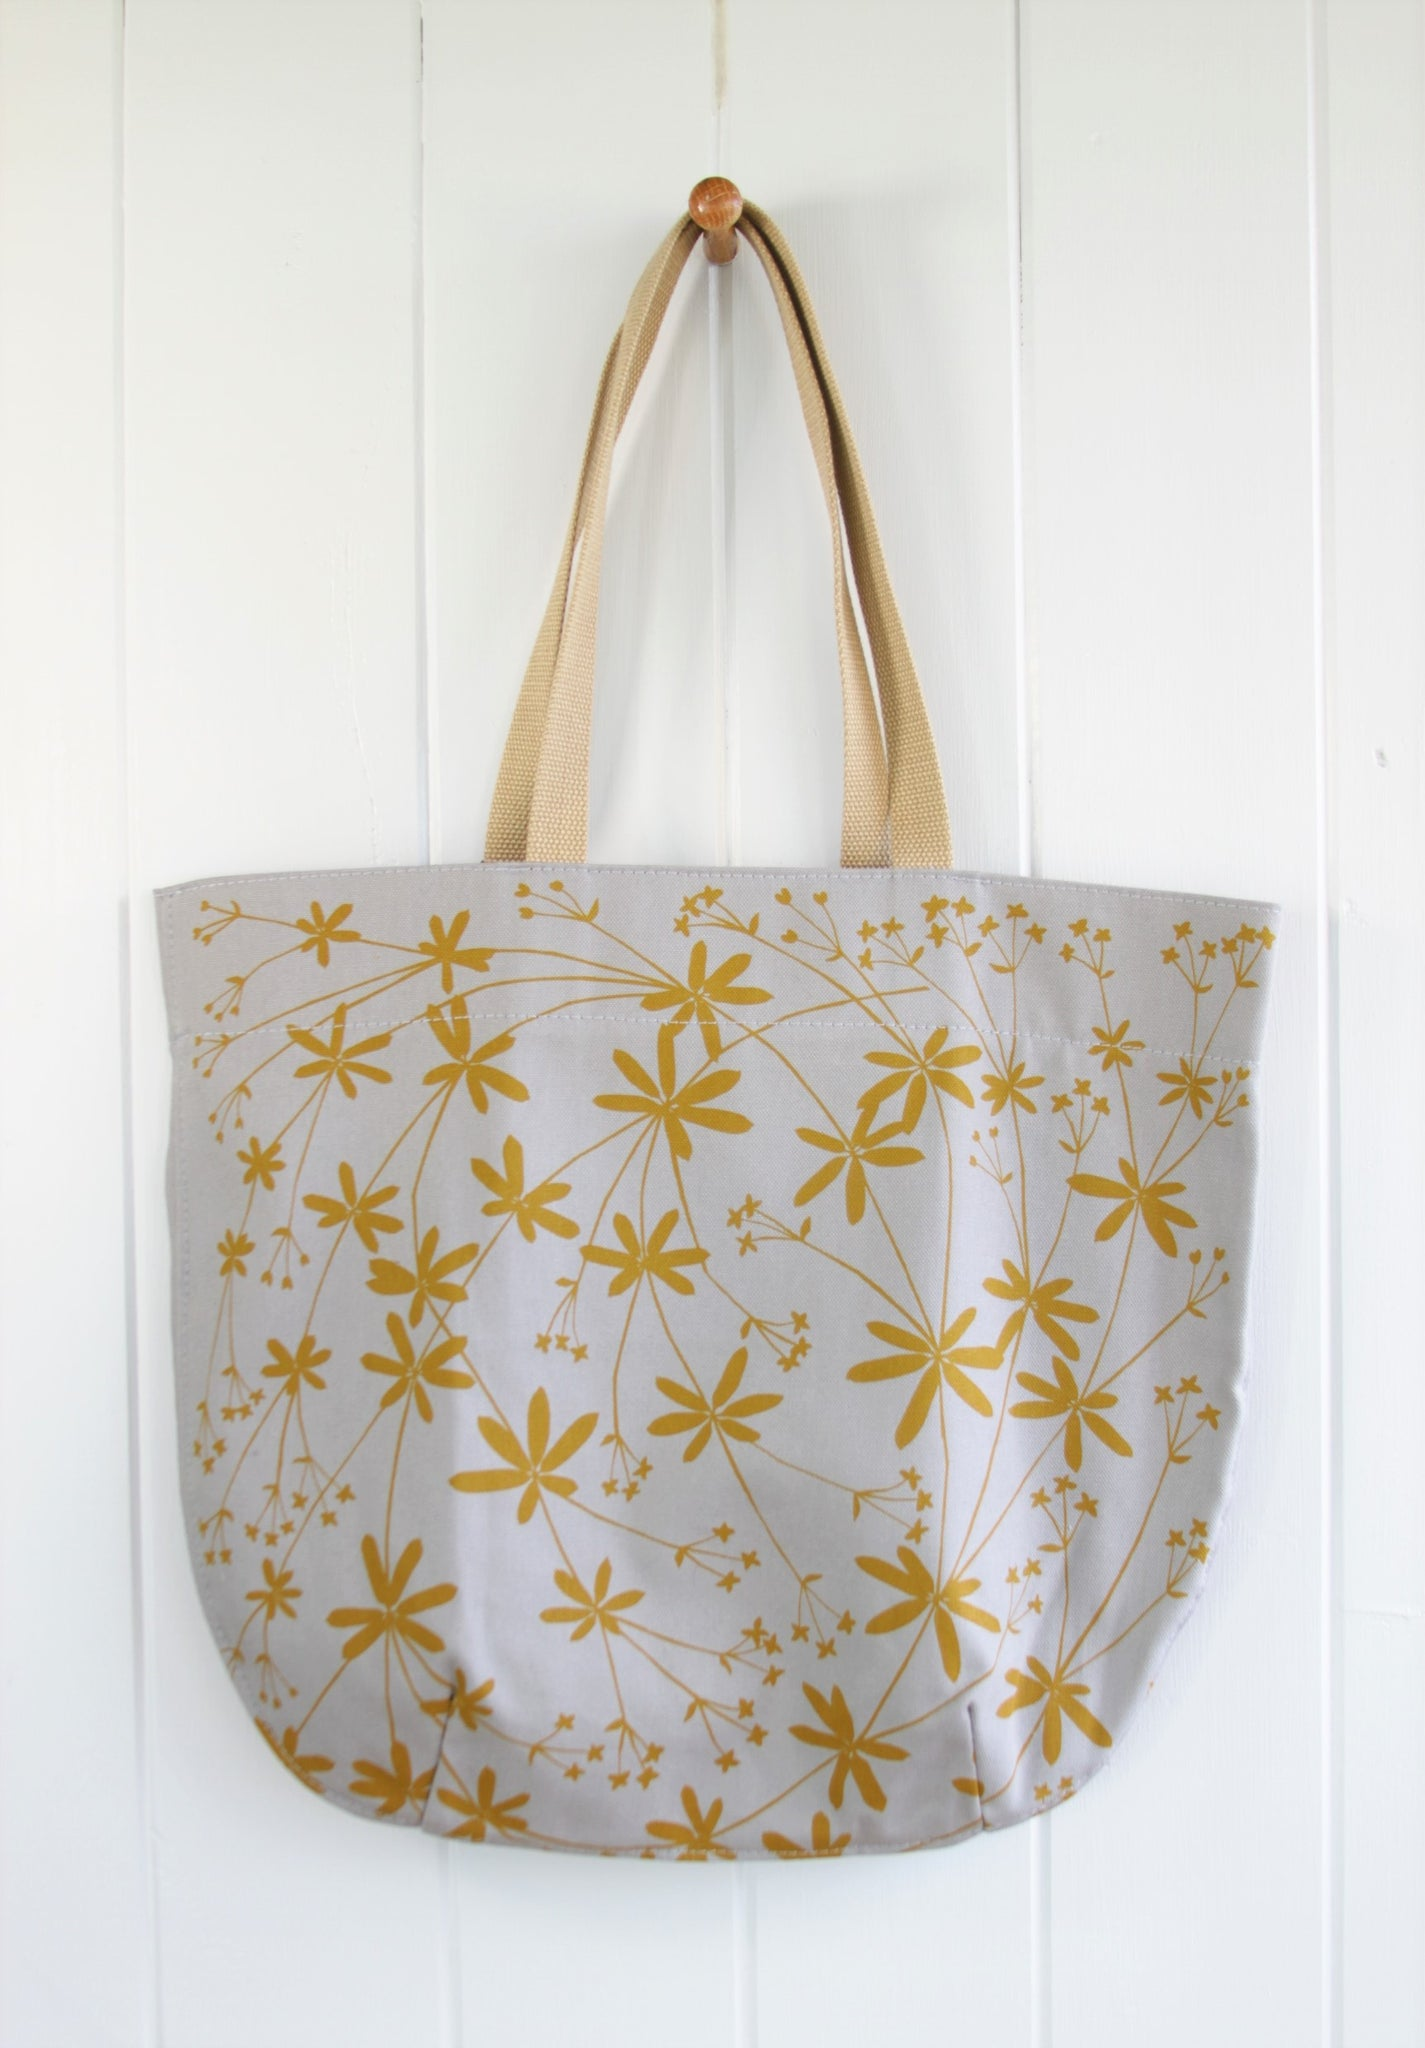 Market Bag - Bedstraw in Wheat